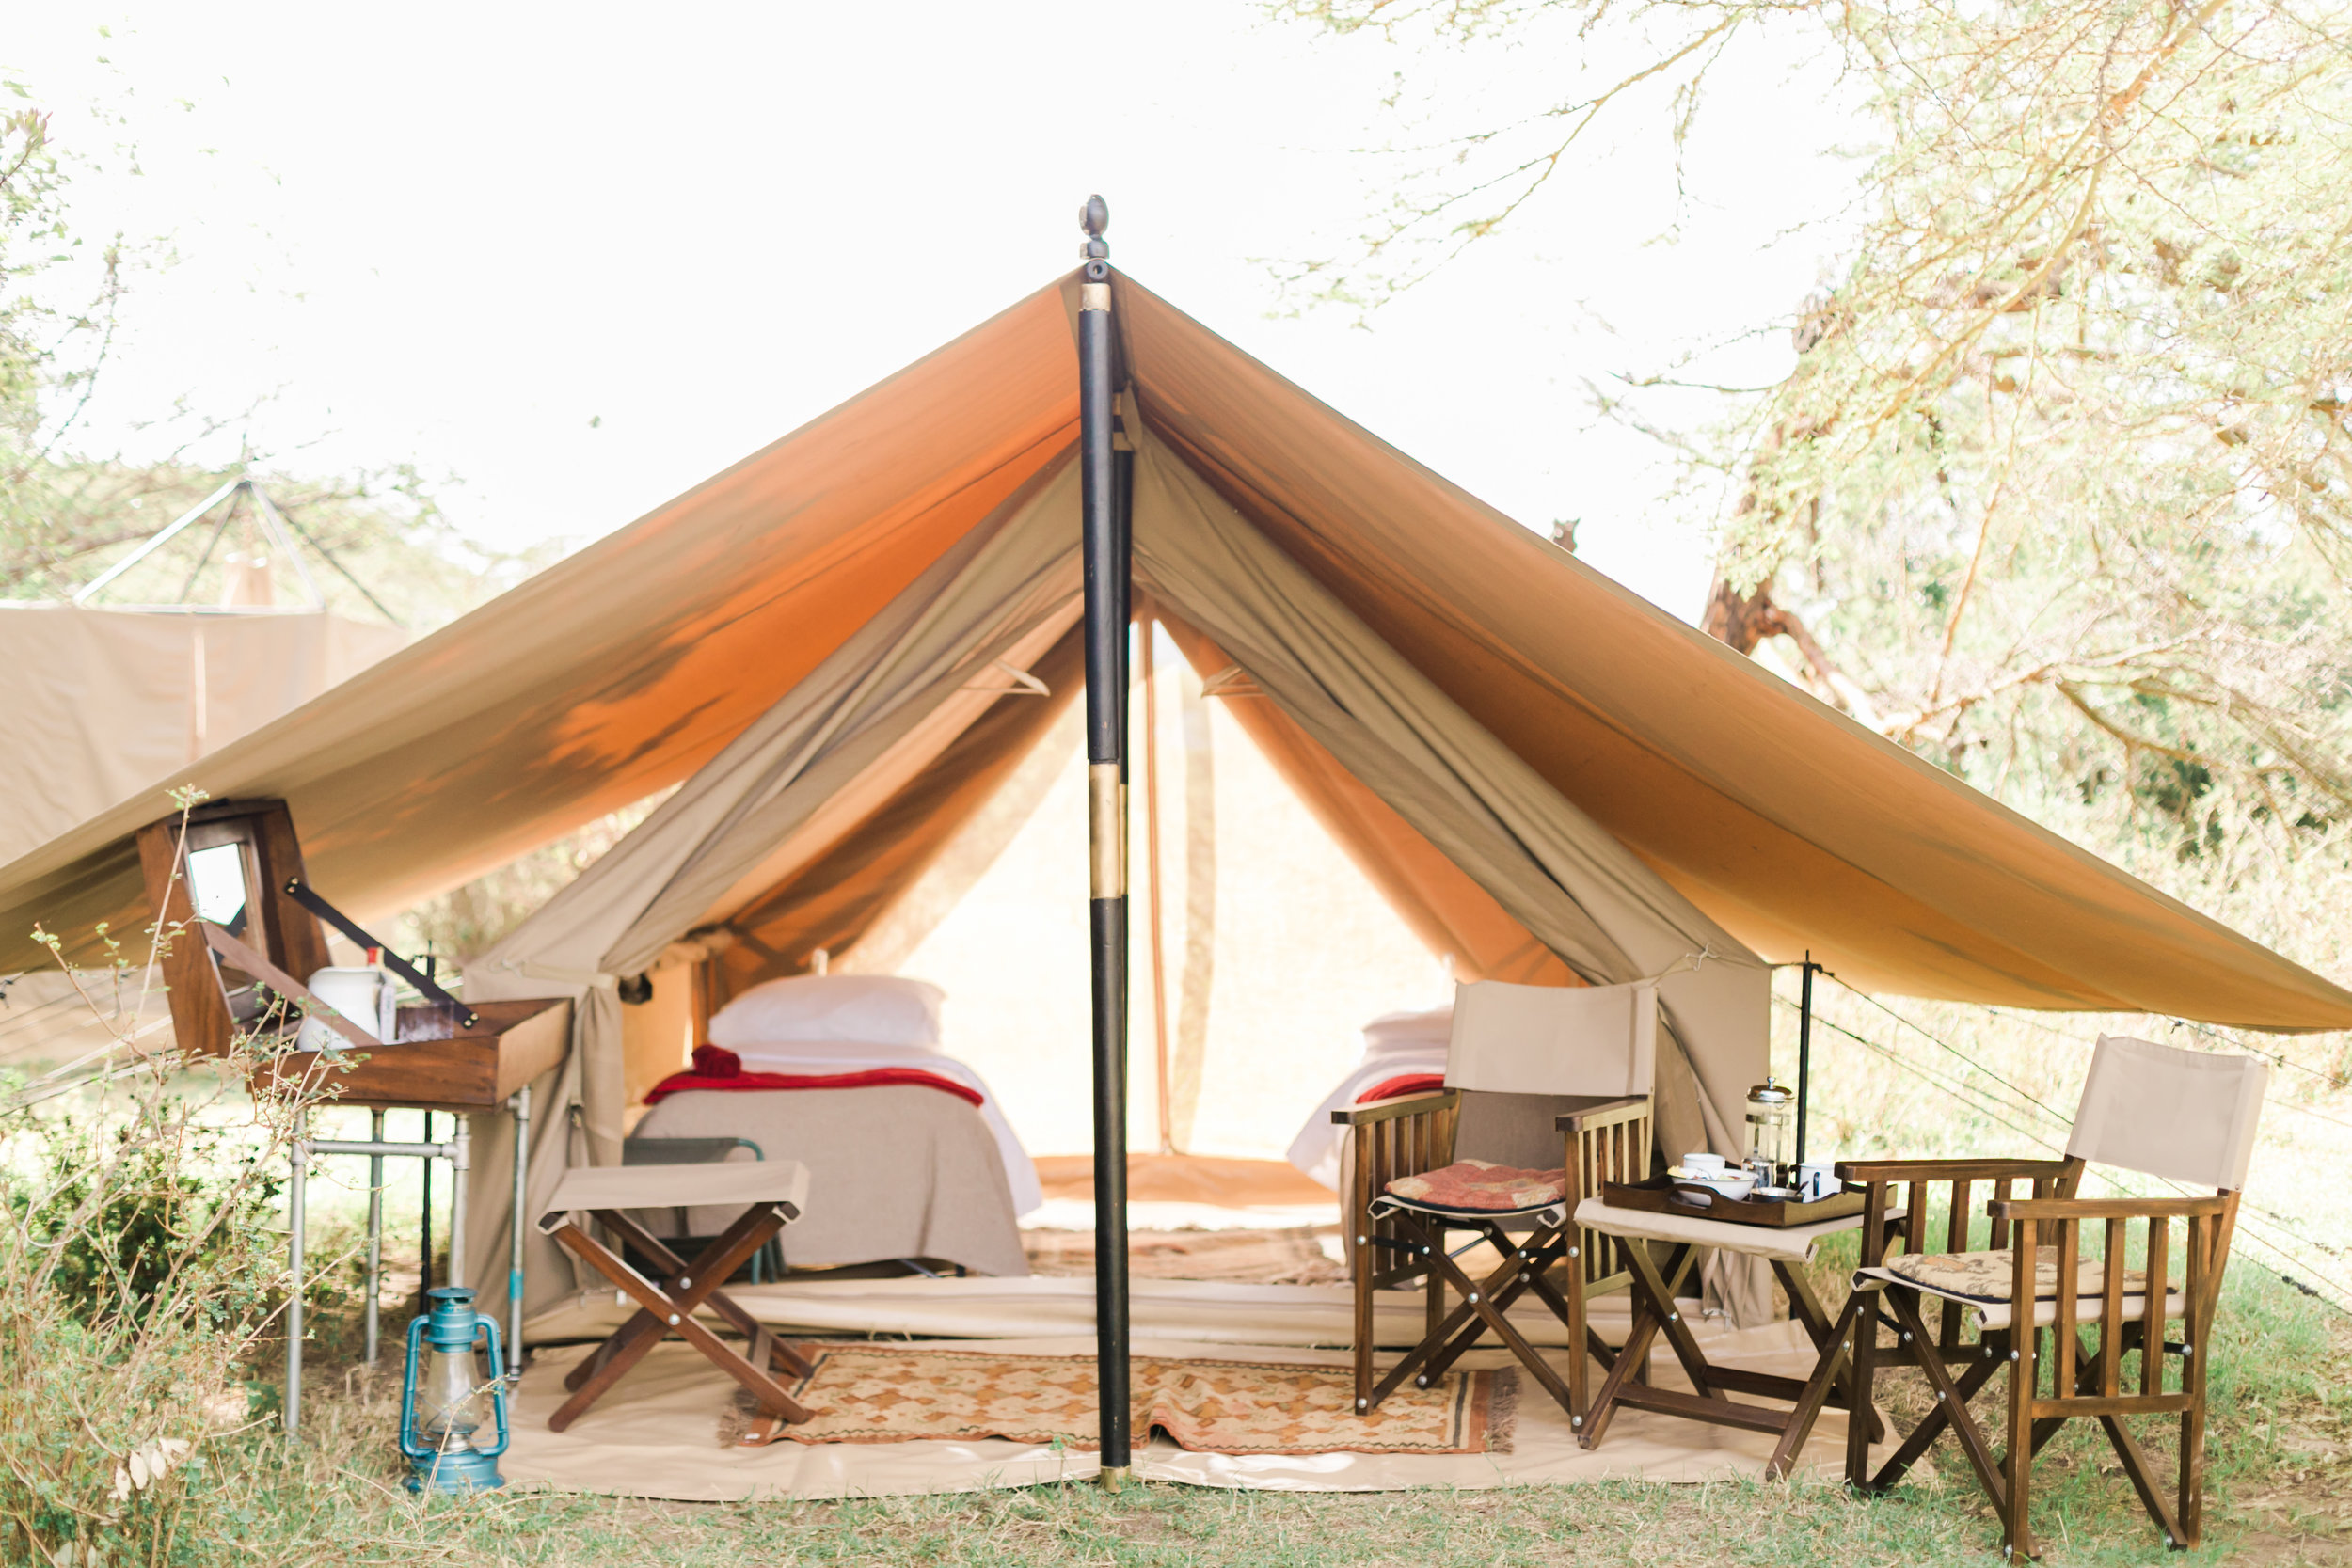 Cottars FLY CAMP ph. Valorie Darling